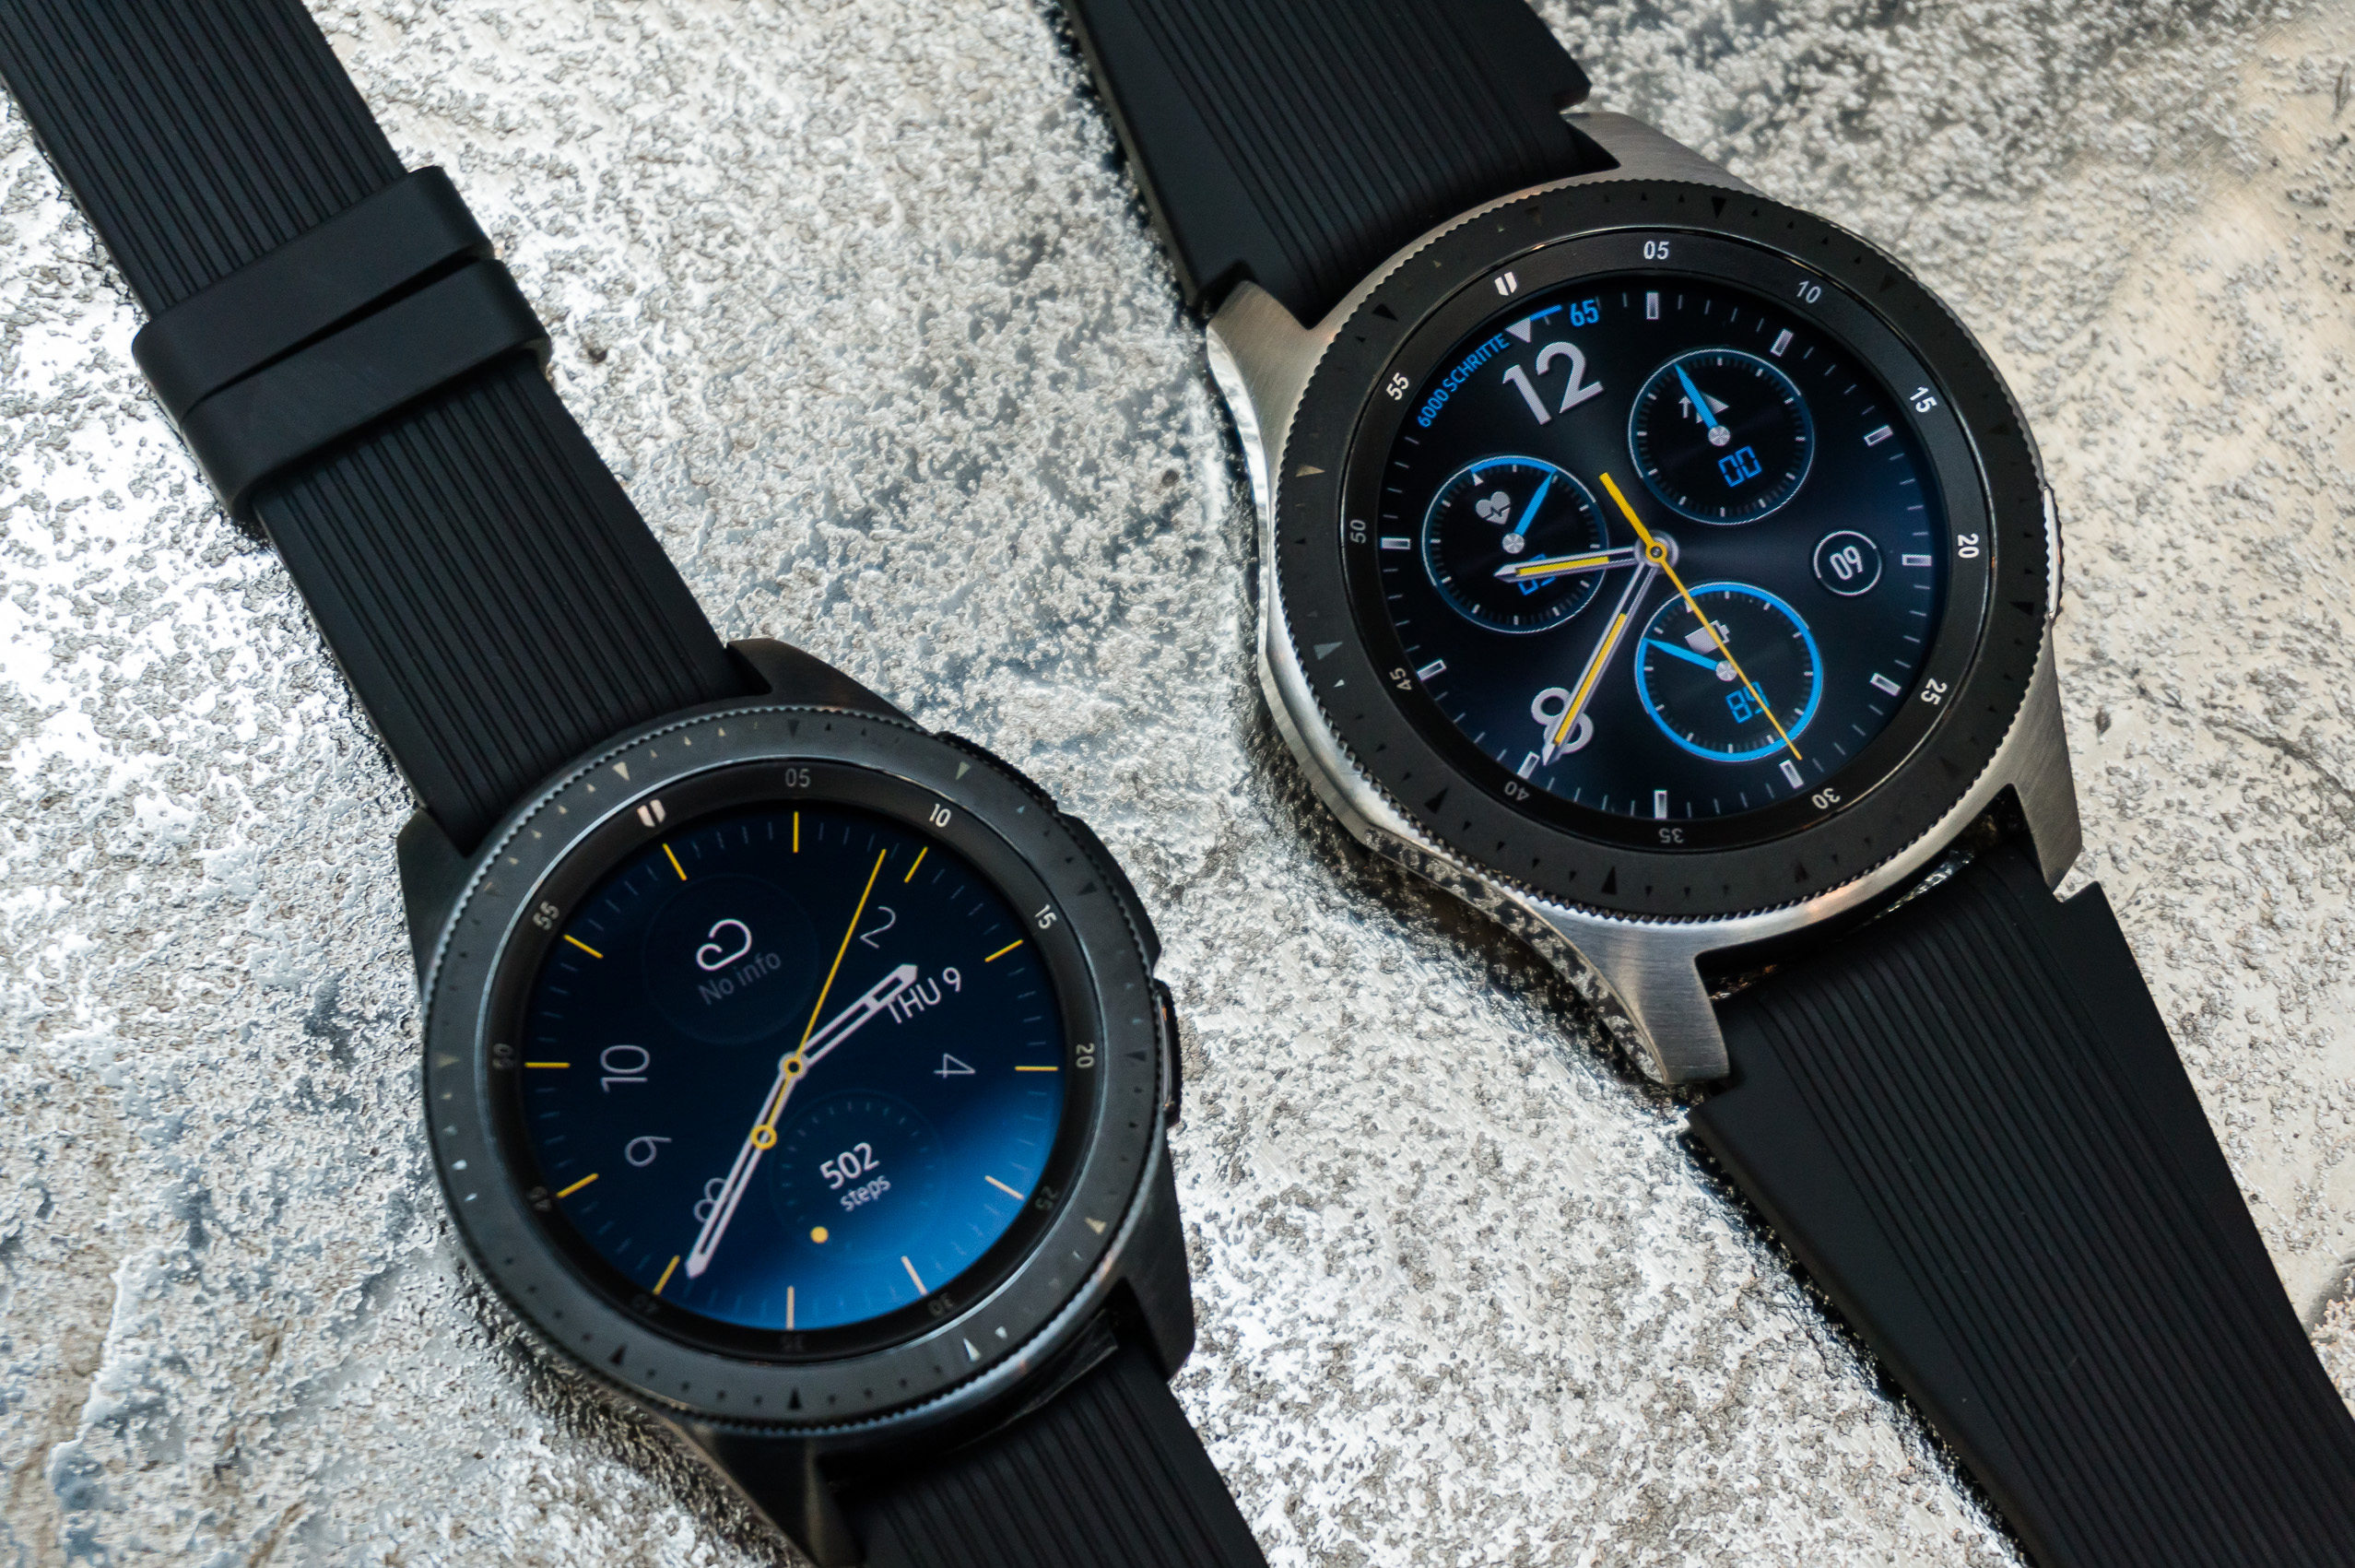 samsung smartwatch 42 vs 46